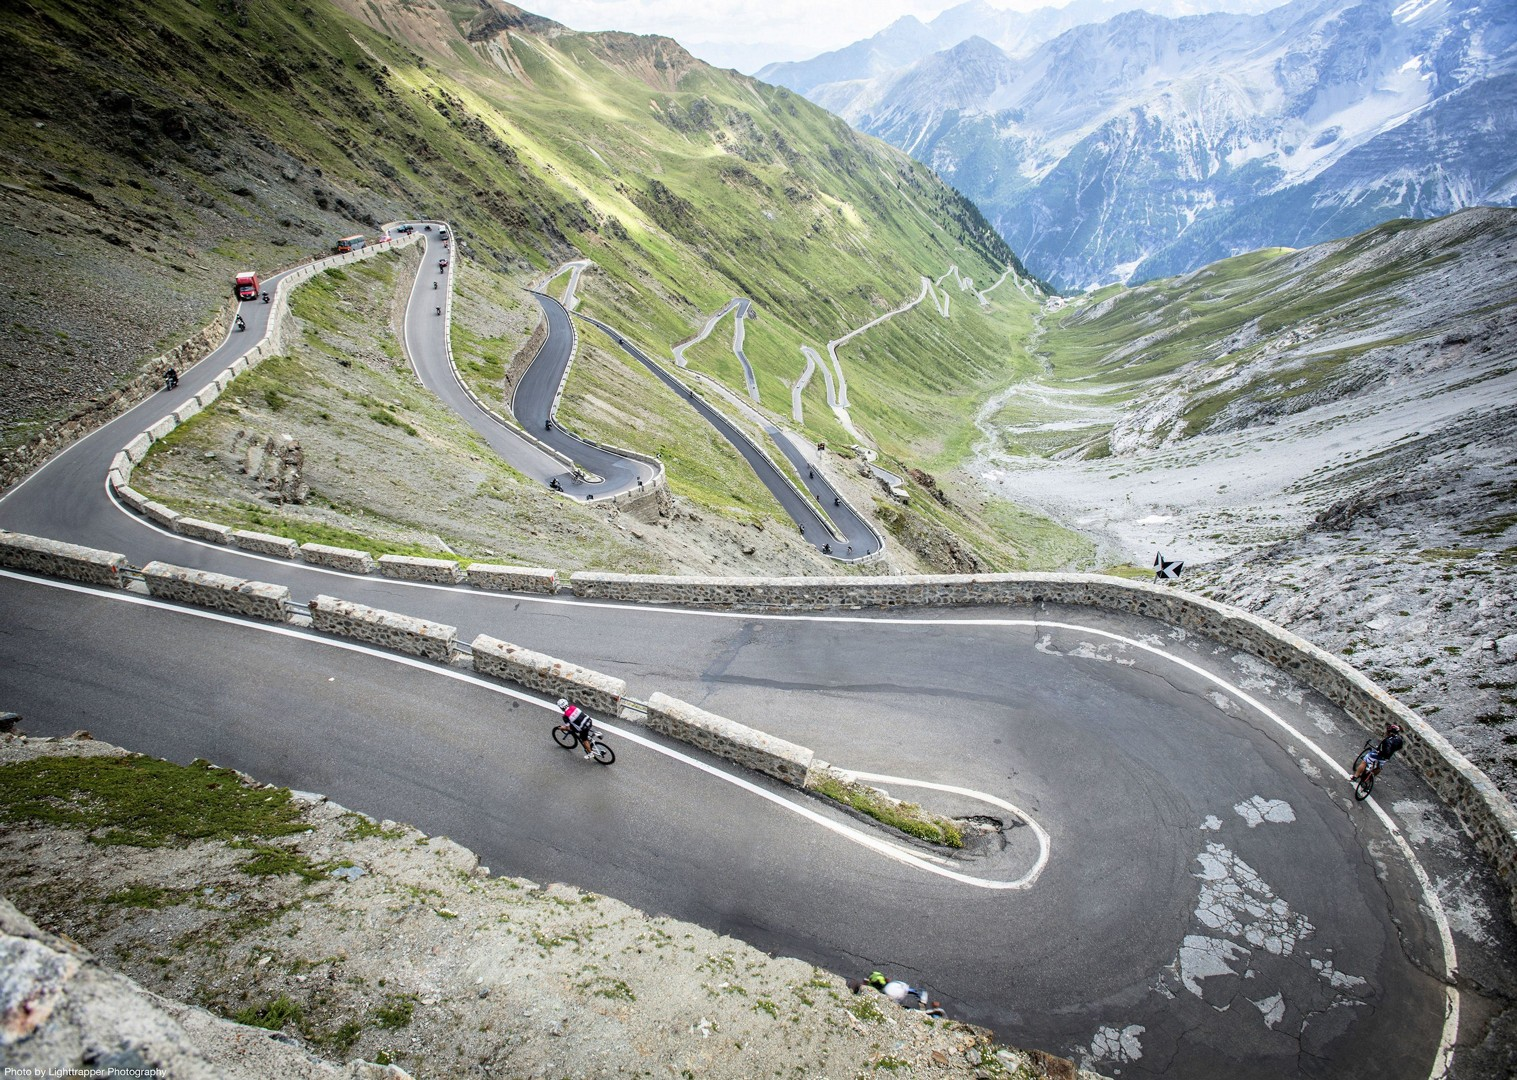 stelvio-guided-road-cycling-holiday.jpg - Italy - Italian Alps Introduction - Guided Road Cycling Holiday - Road Cycling